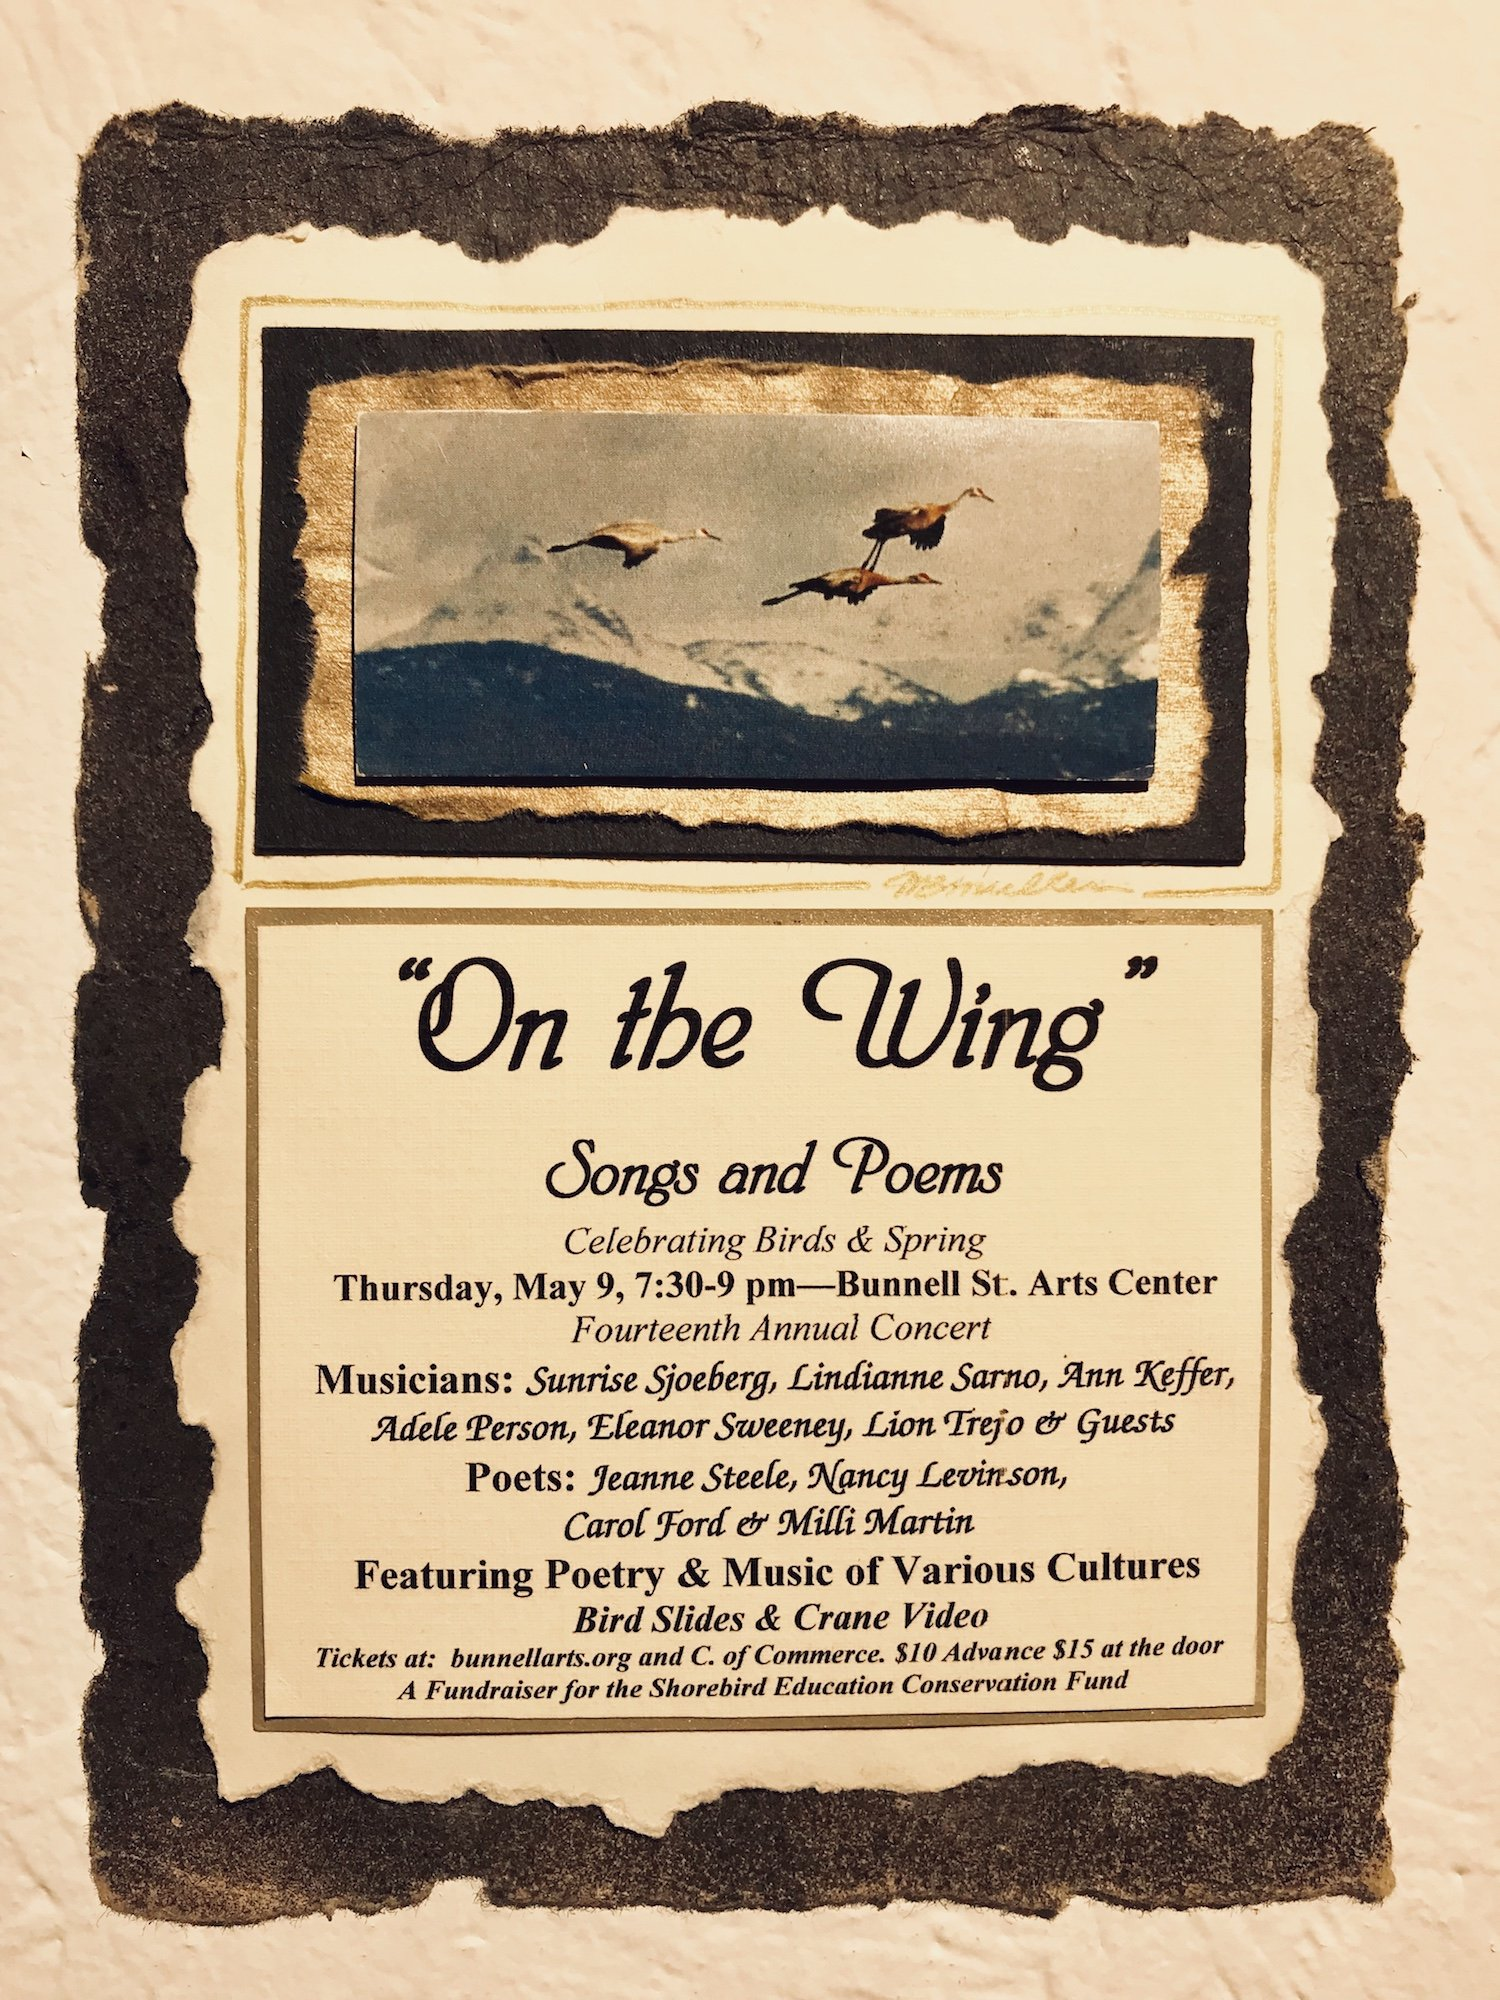 On The Wing Concert, May 9 7:30